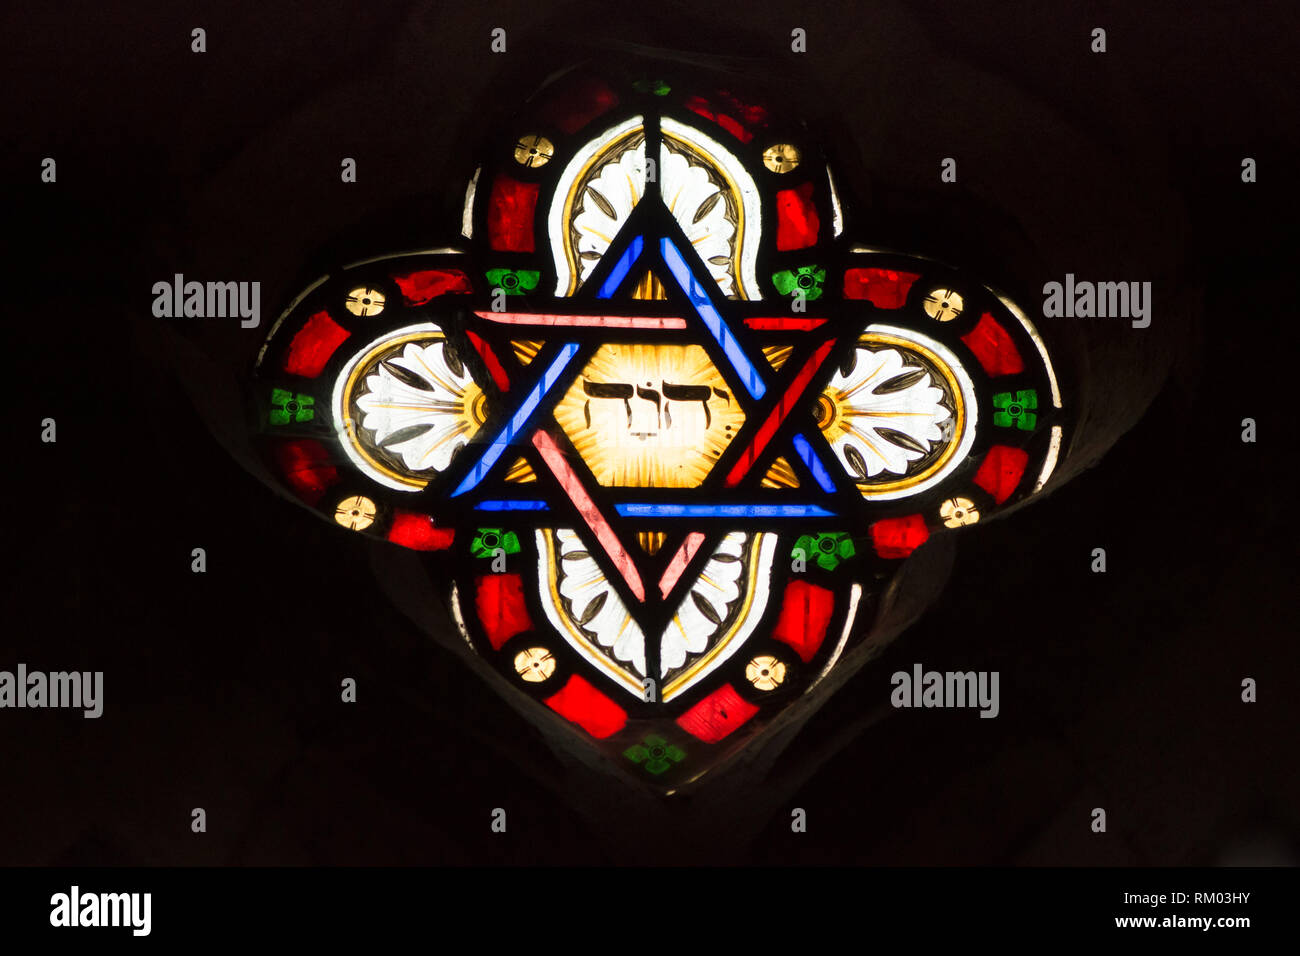 tetragramaton, YHWH, JHVH, Hebrew letters for name of God in